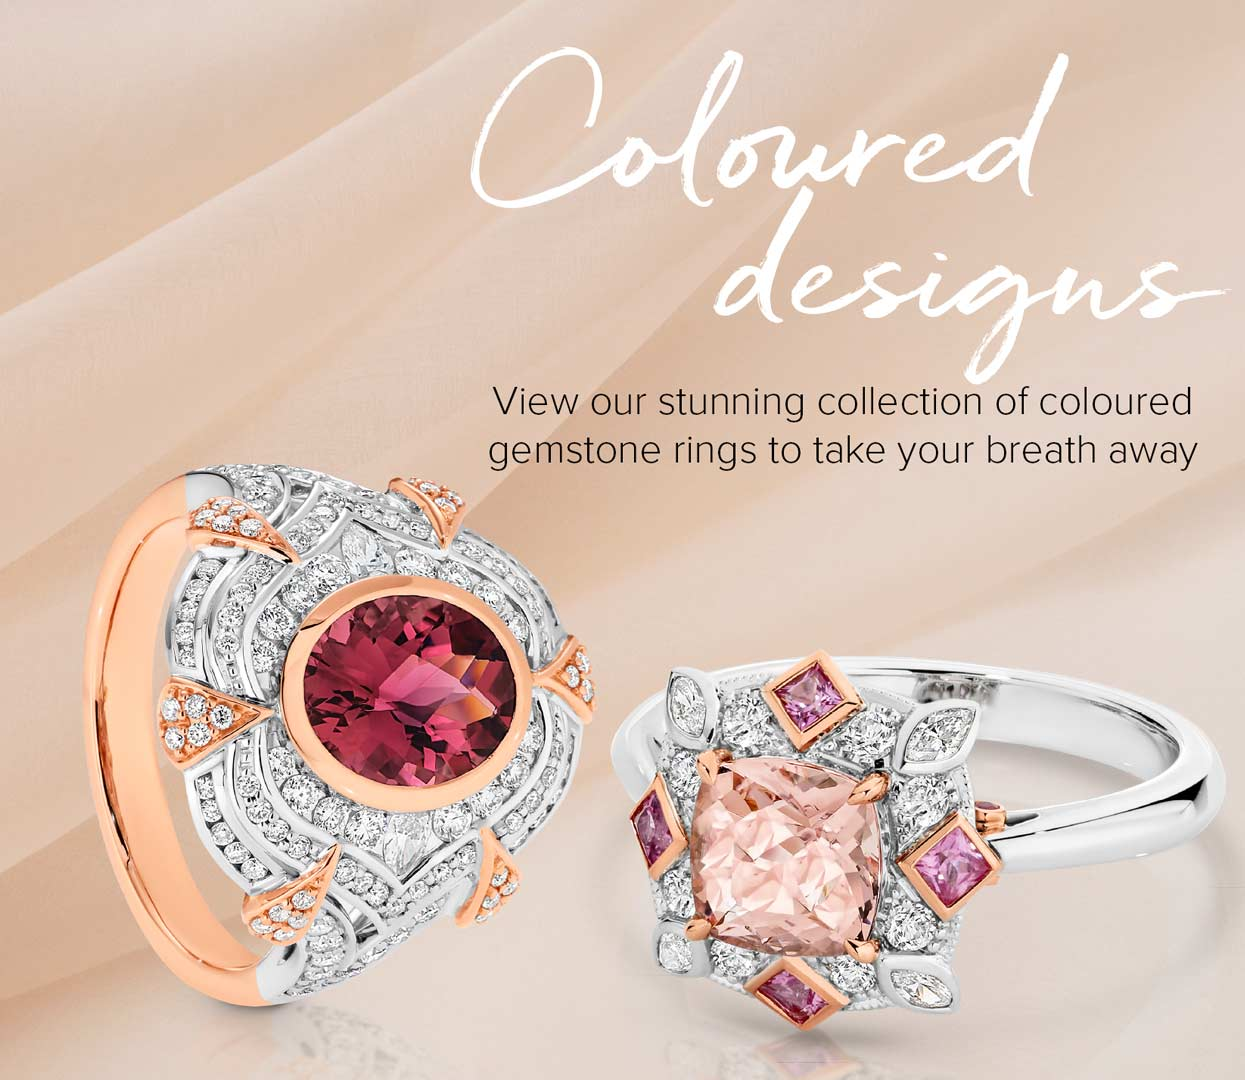 Gemstone Rings At Keoghan's Showcase Jewellers